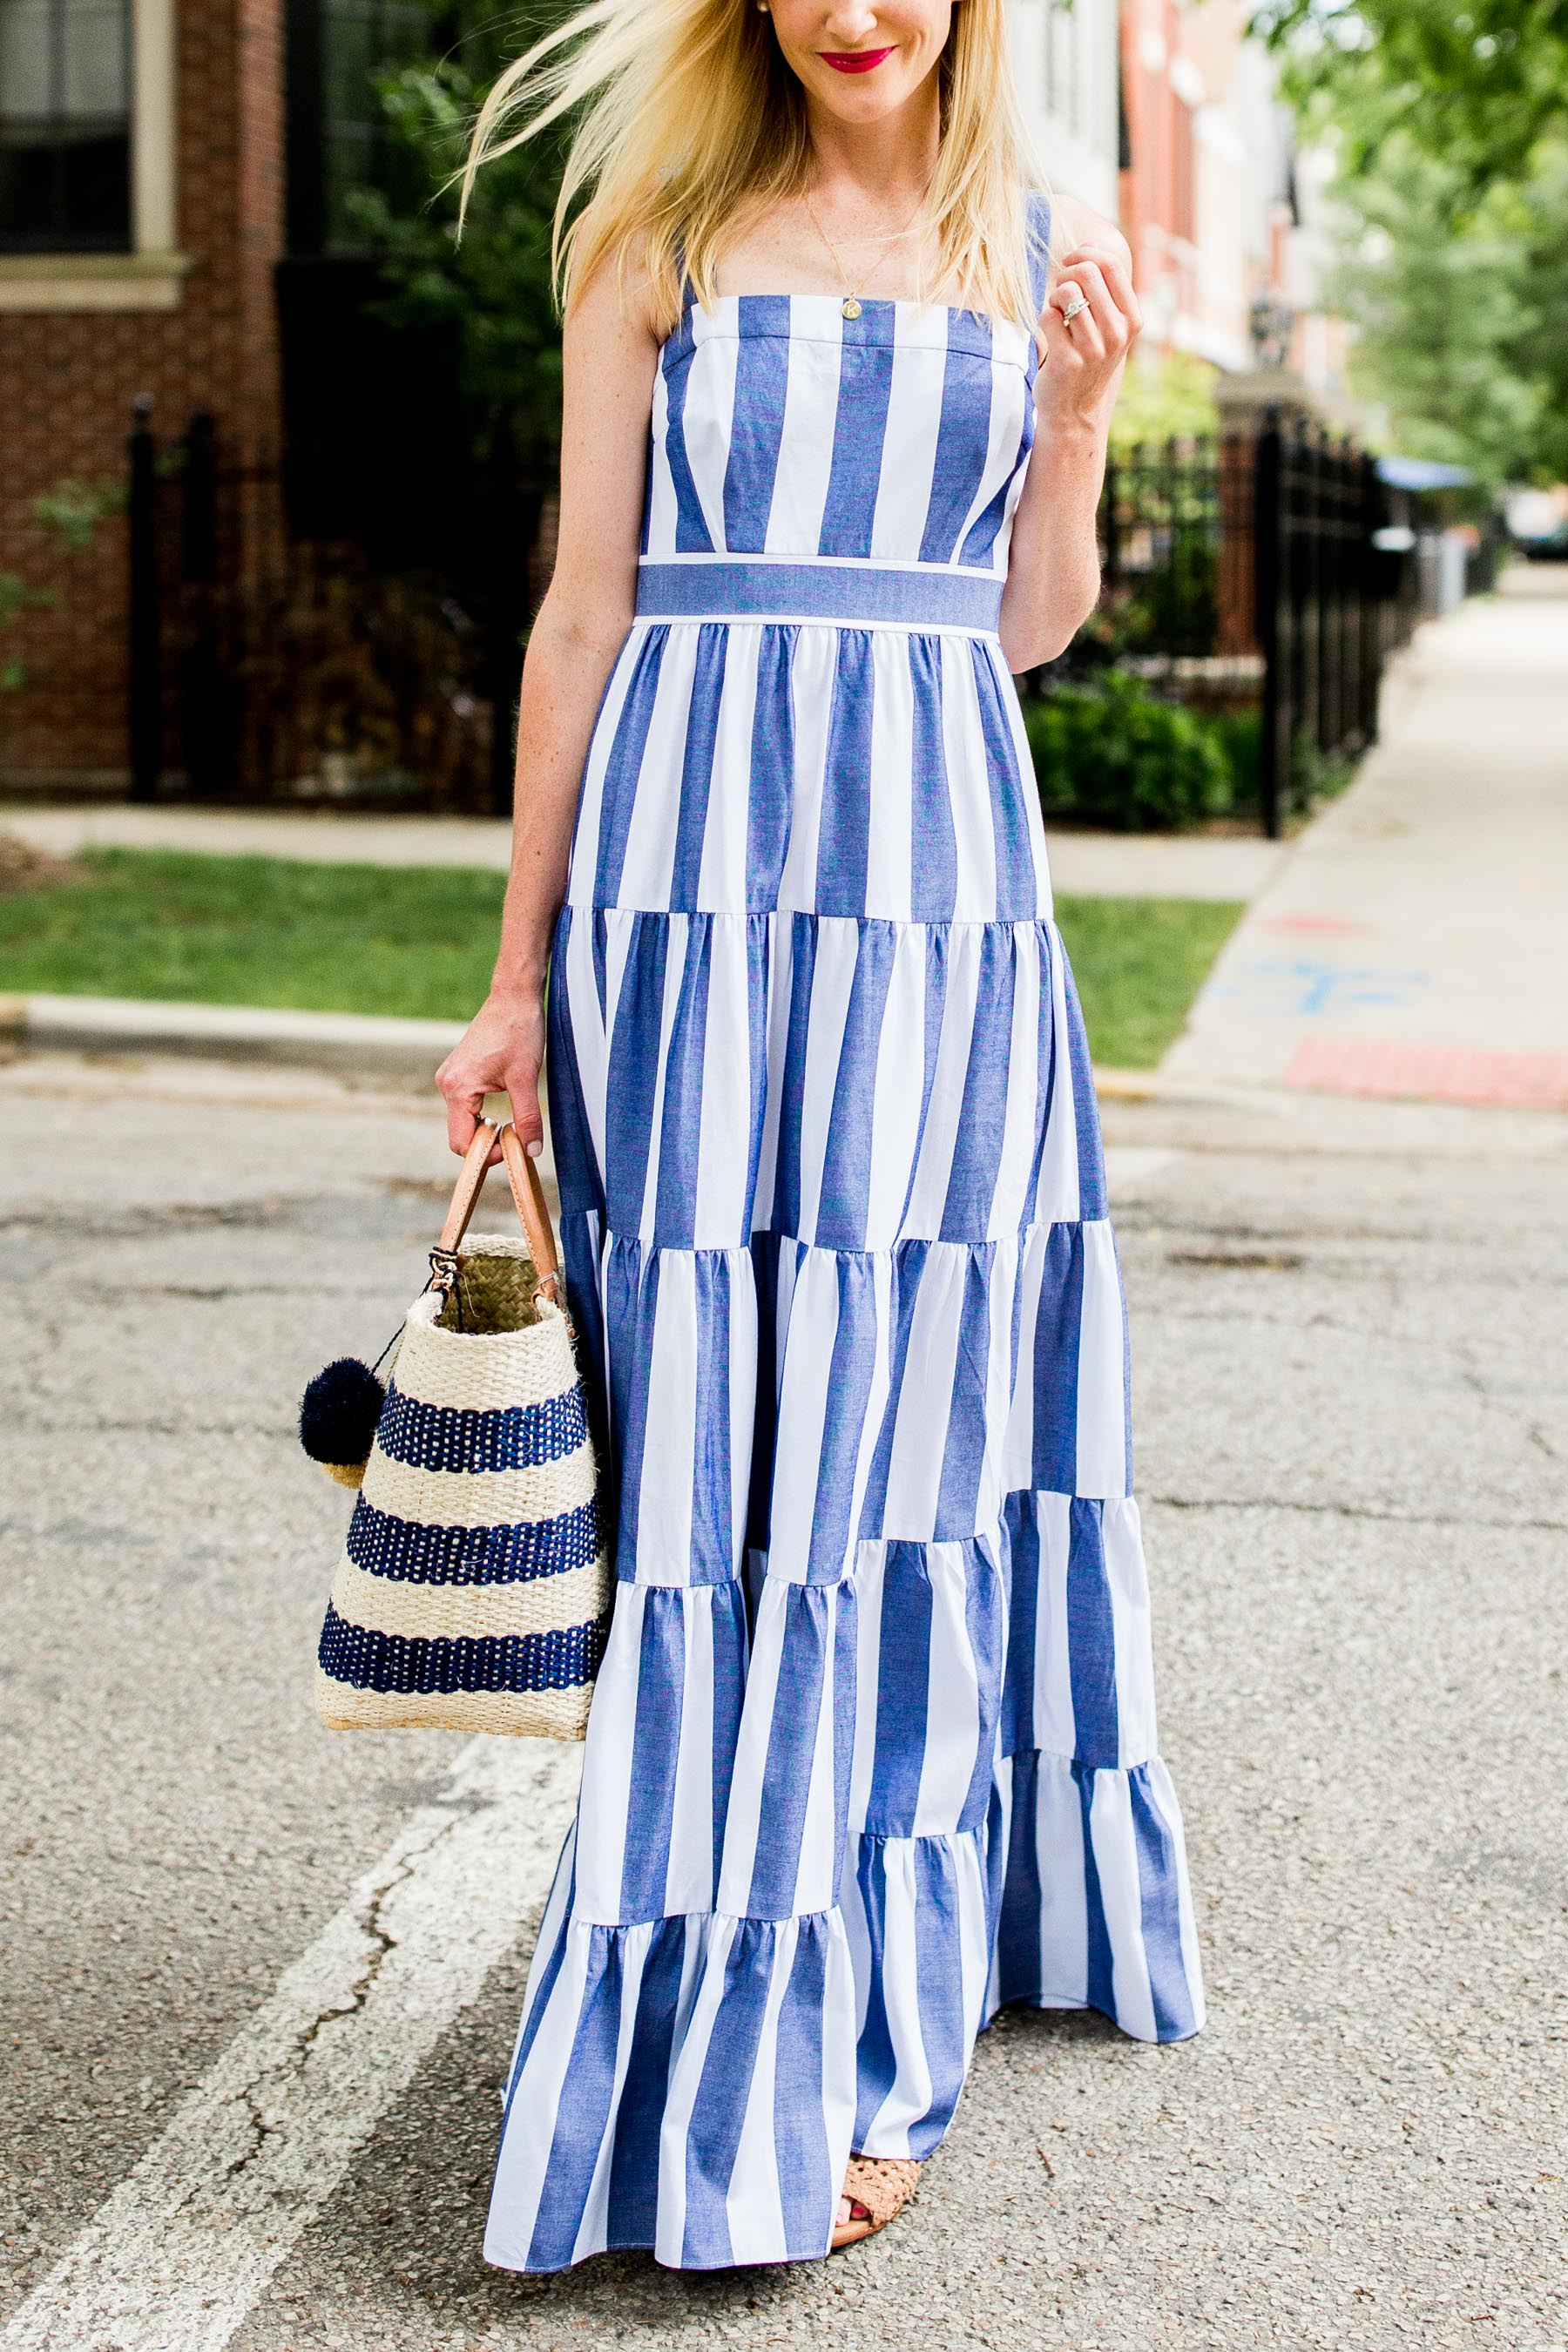 d617a500799 Stripe Tiered Maxi Sundress ELIZA J